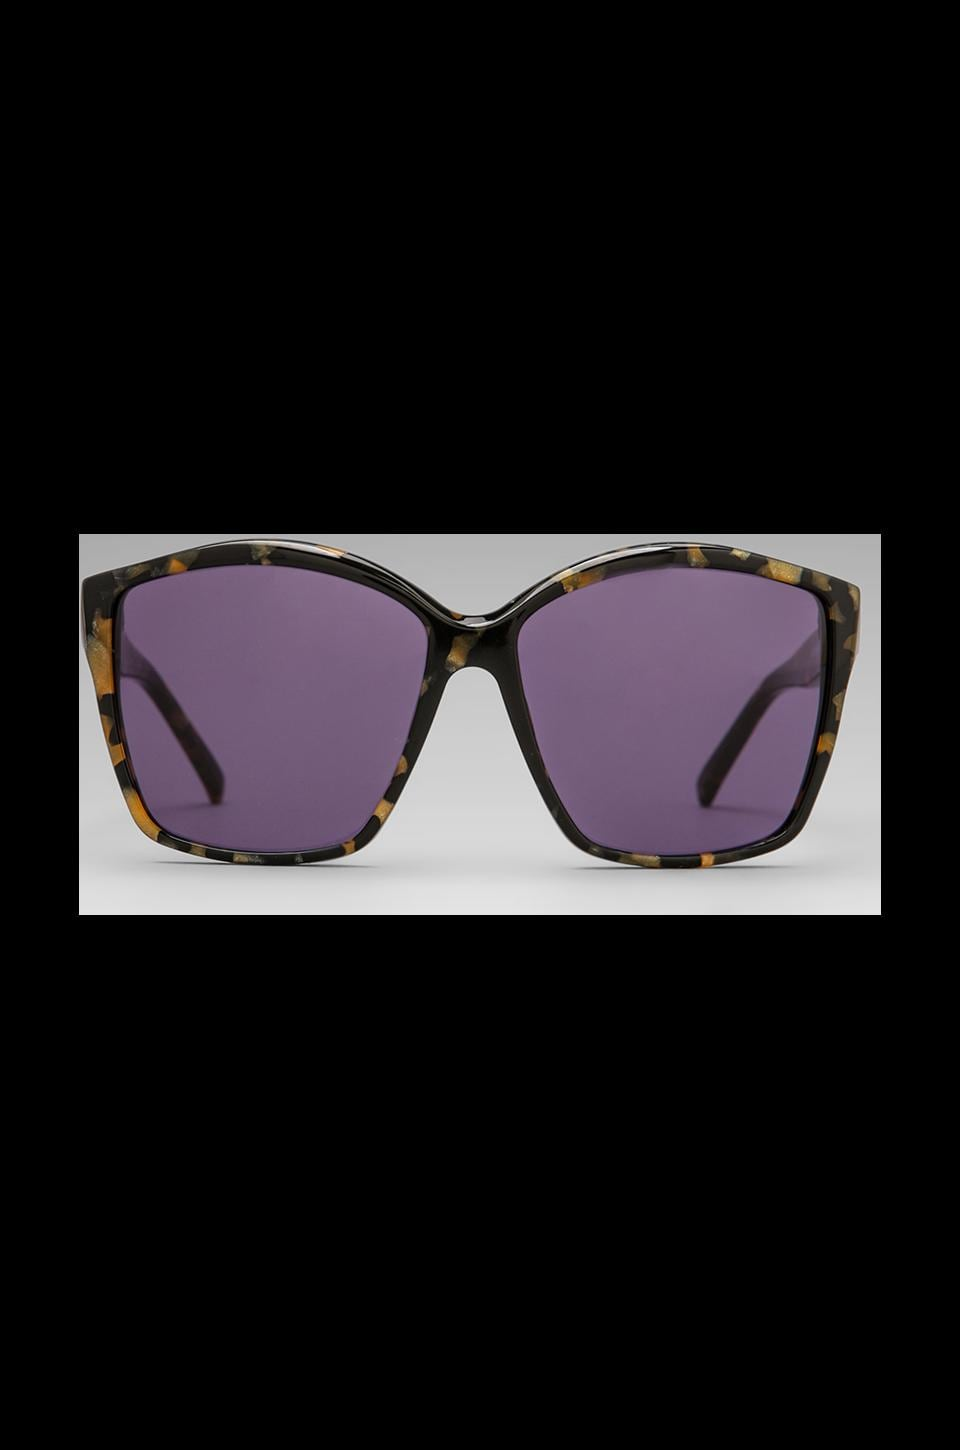 House of Harlow 1960 House of Harlow Jordana Sunglasses in Black/Gold